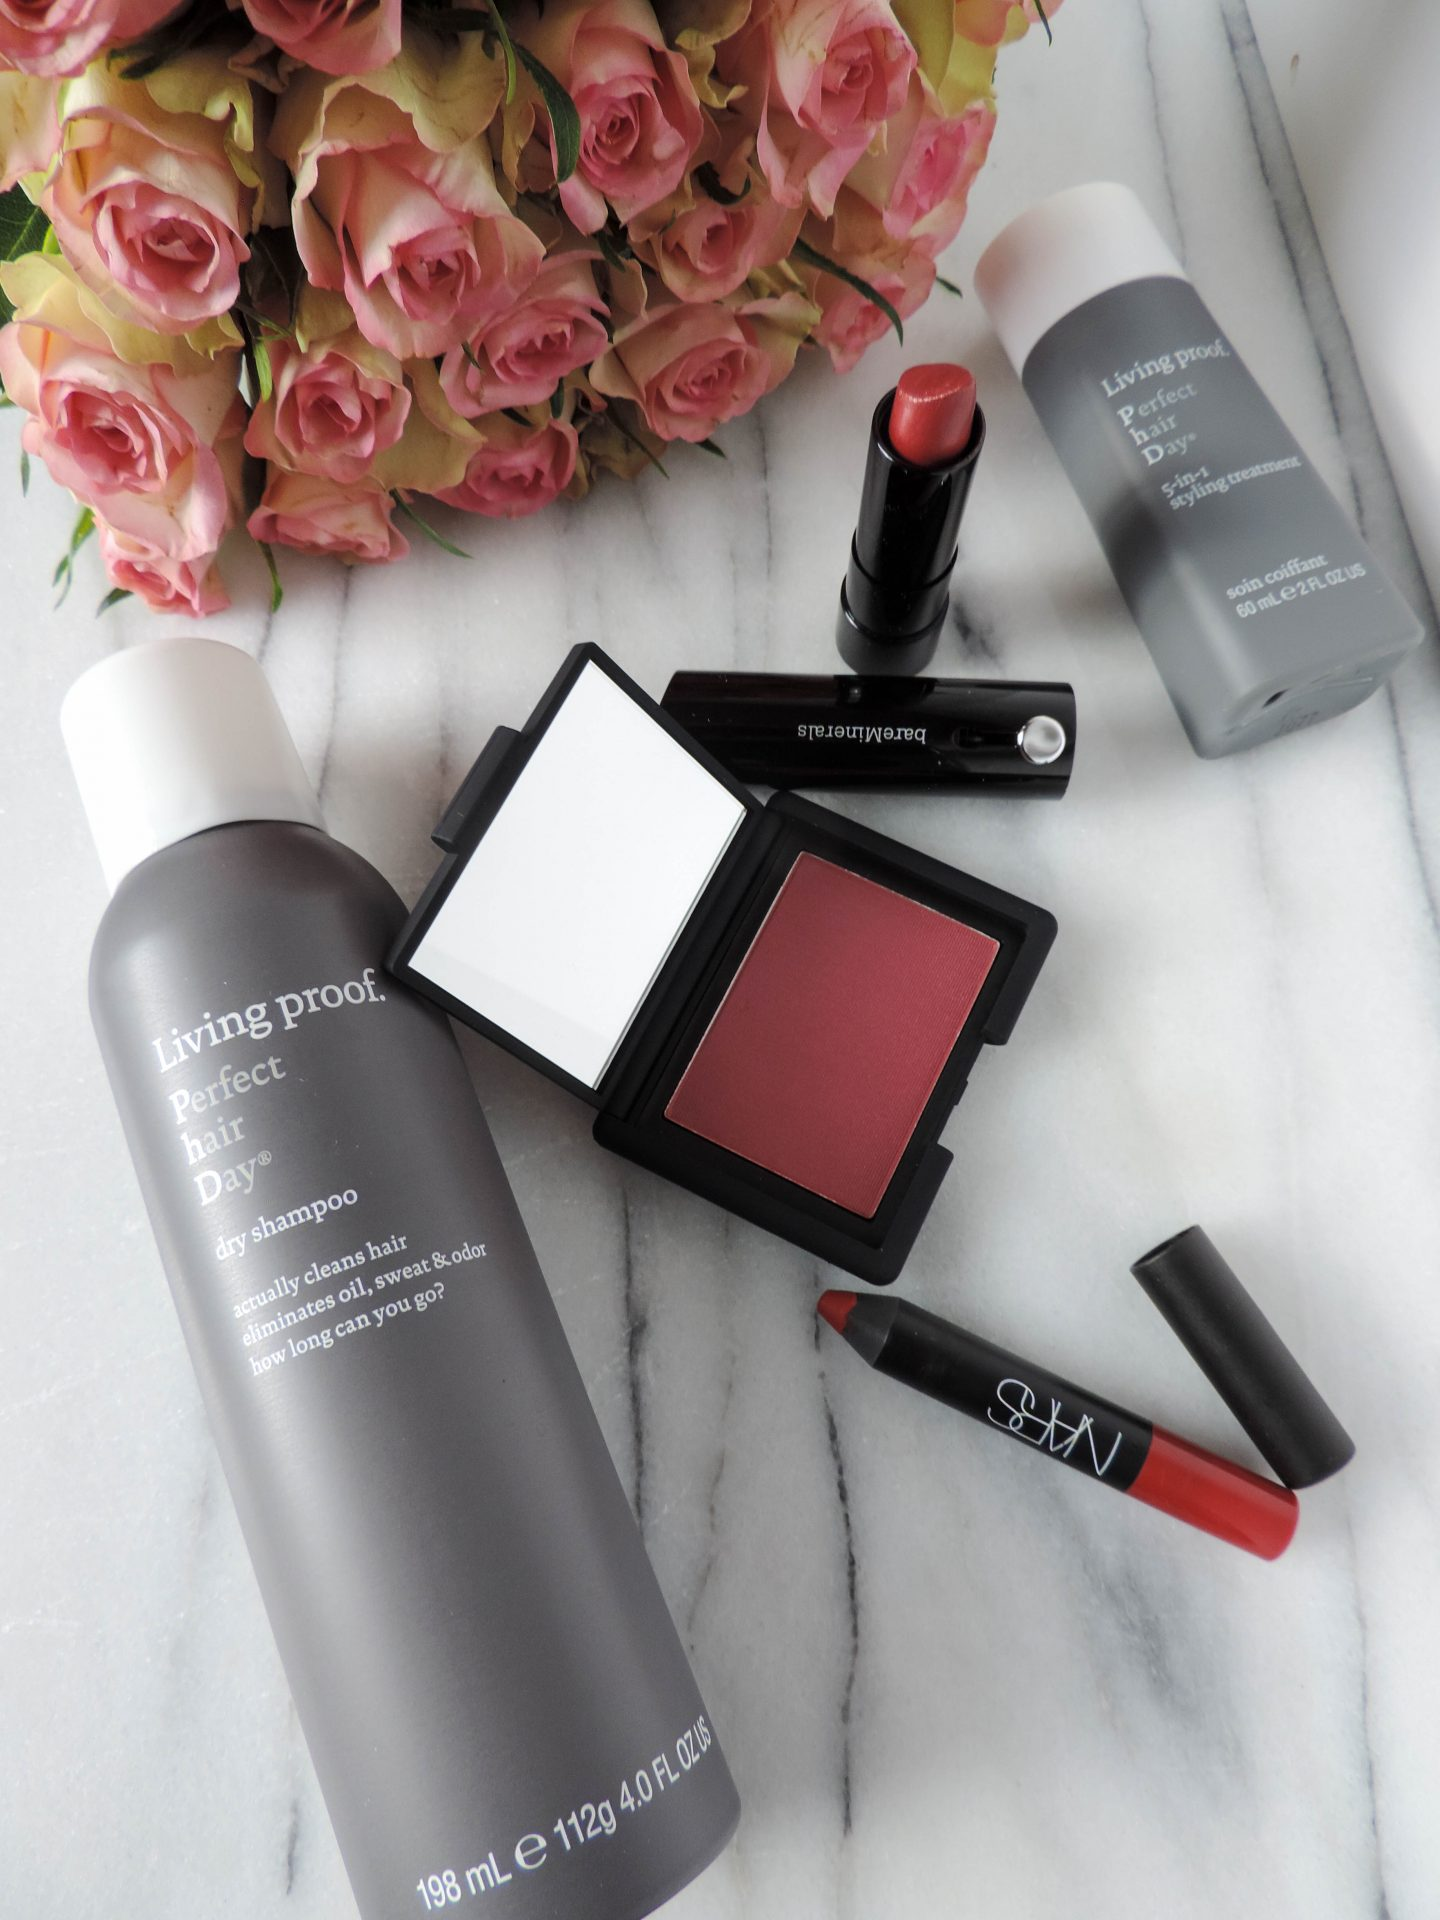 My Fall Beauty Faves